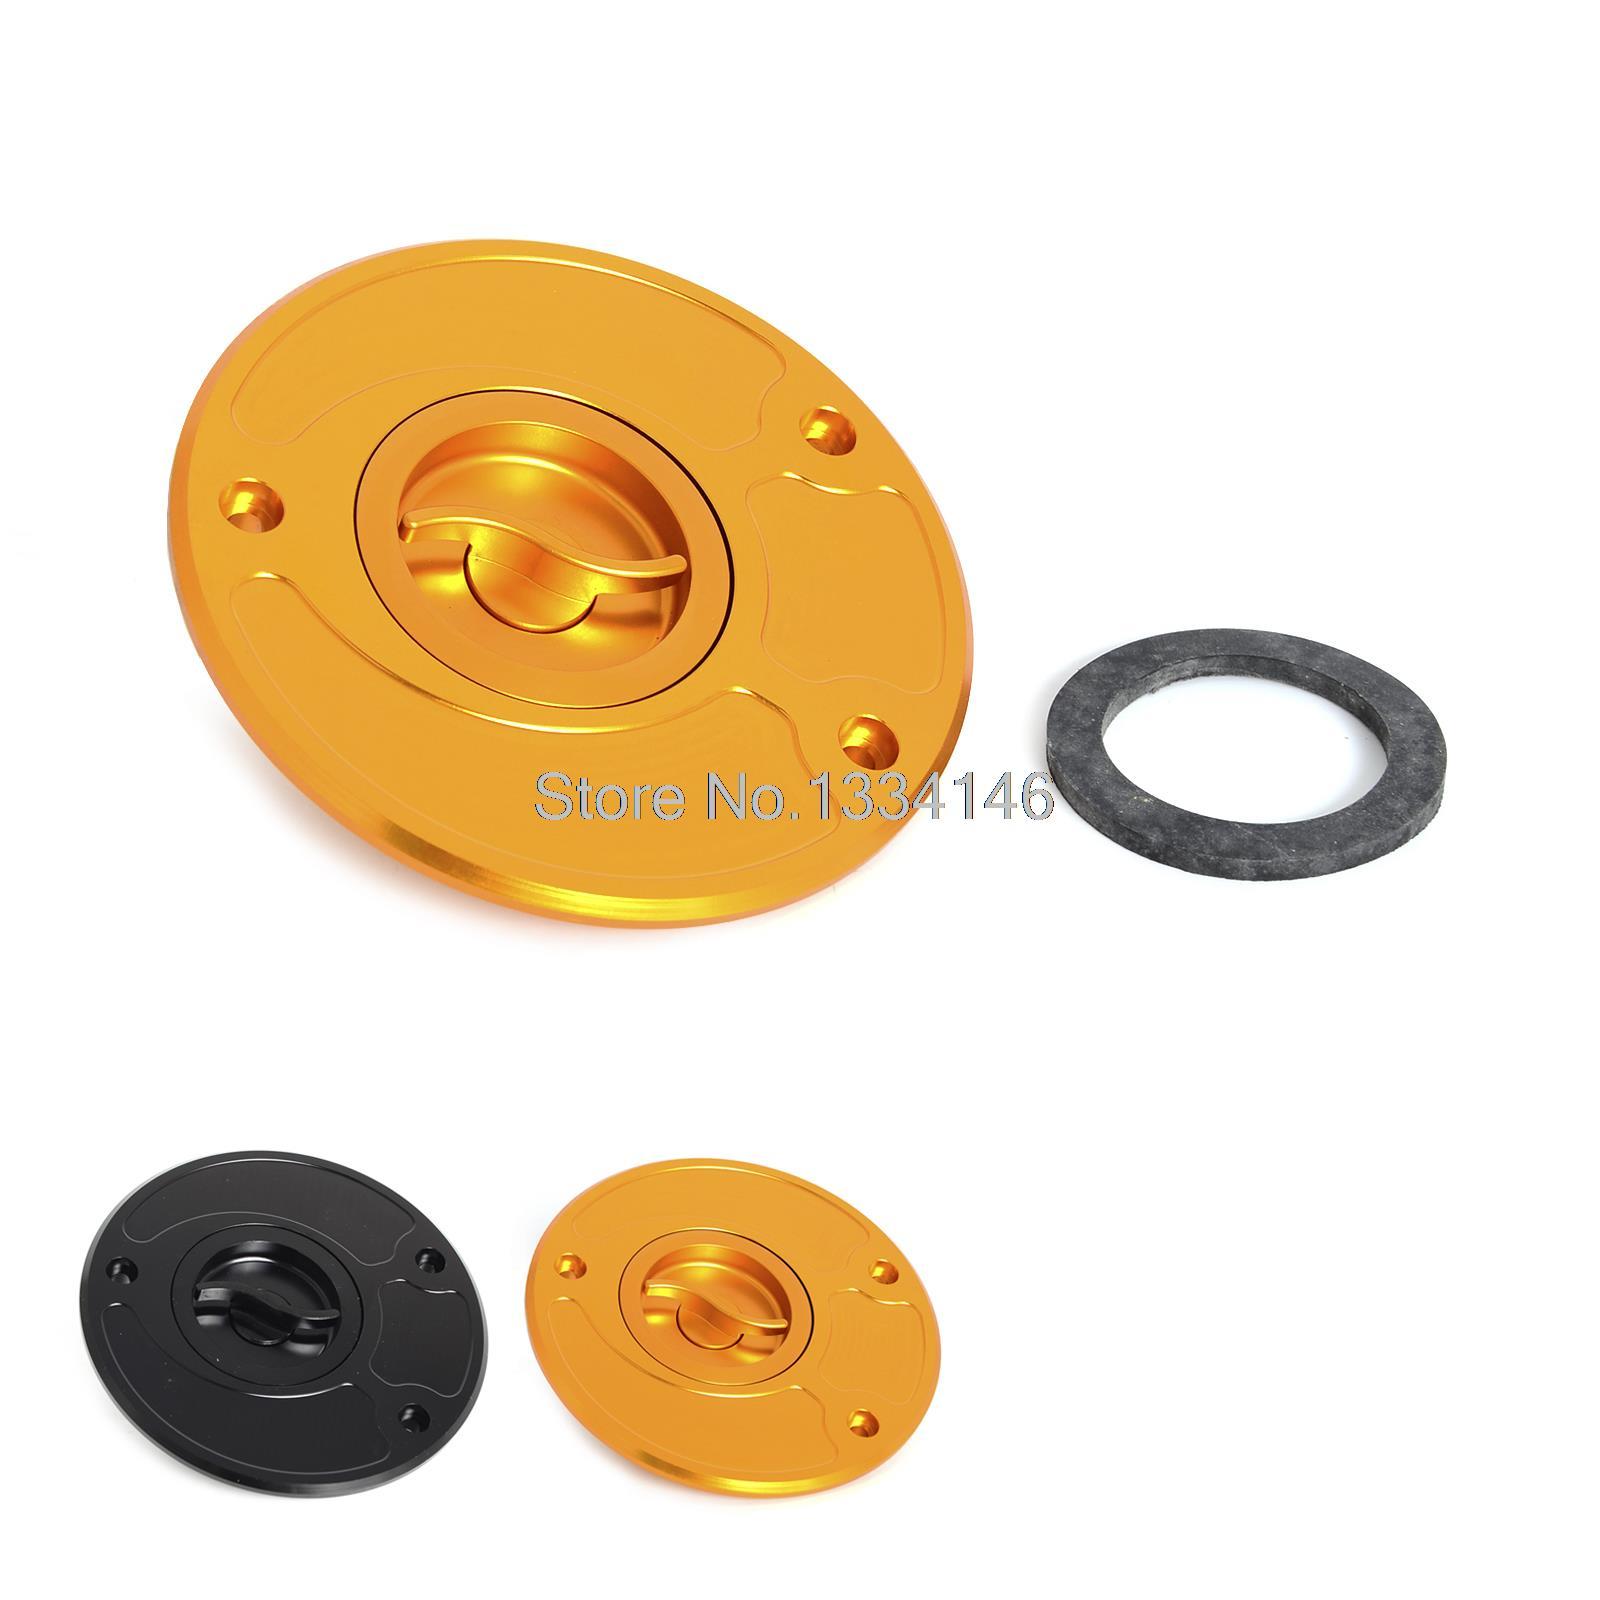 Aluminum Fuel Gas Cap Anodized Fit For KAWASAKI ZX6R ZX10R ZX14R ER6F/N VERSYS 650 Z750/R Z800 Z1000 nicecnc stunt clutch pull cable lever replacement easy system for kawasaki kx klx 125 250 z800 z900 z1000 z750 zx6r zx10r er6f n